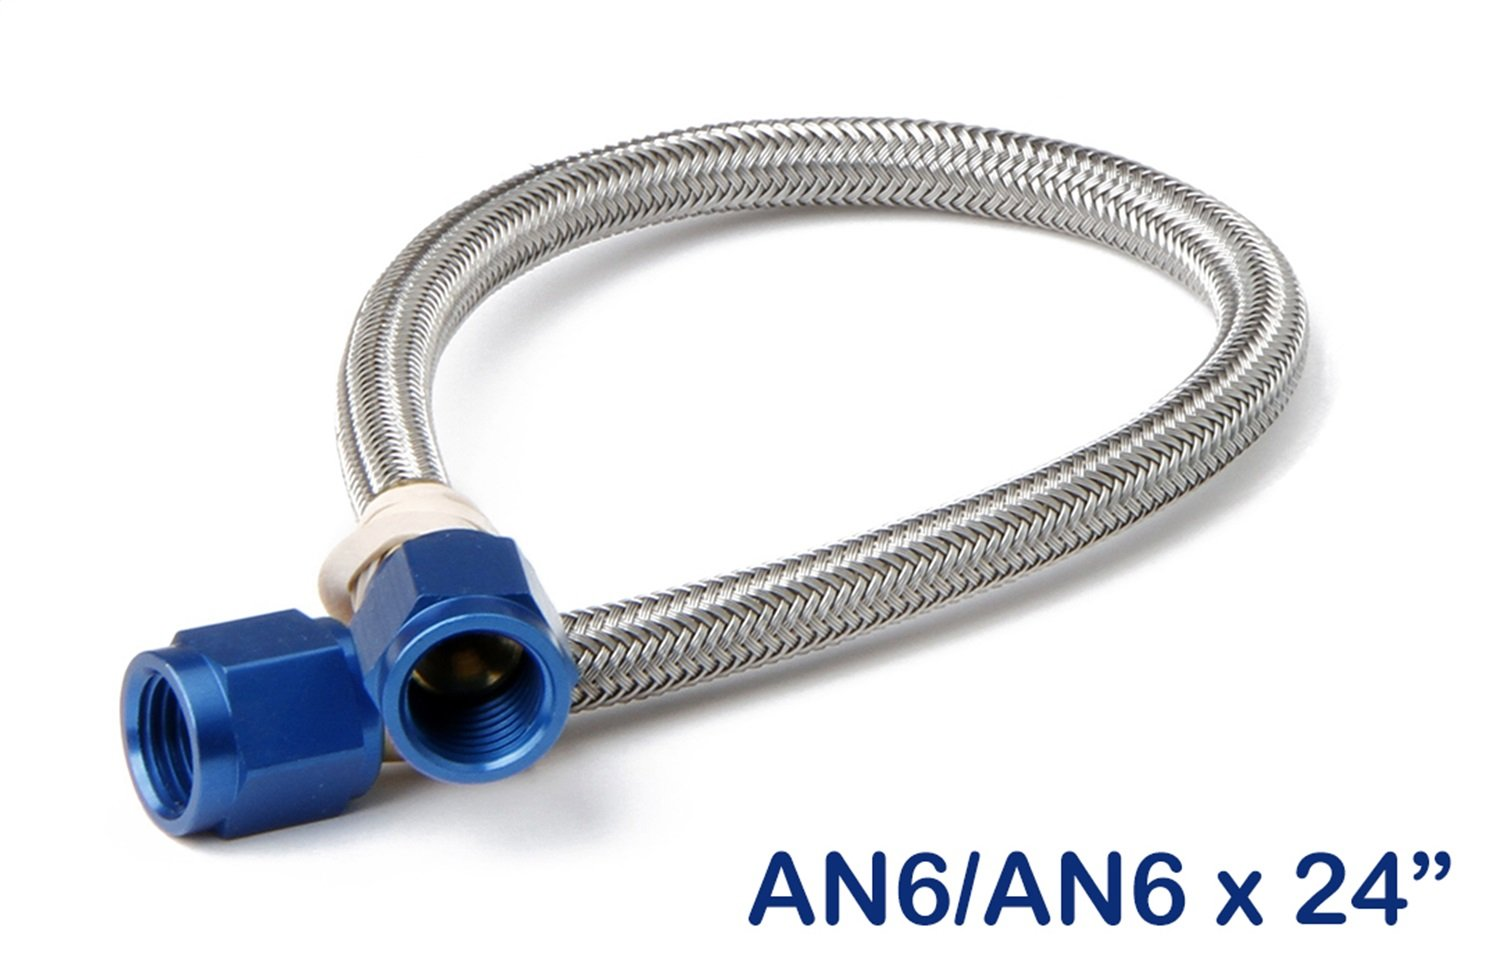 NOS 15410NOS Stainless Steel 2' Braided Hose with -6AN Blue Fittings NOS/Nitrous Oxide System